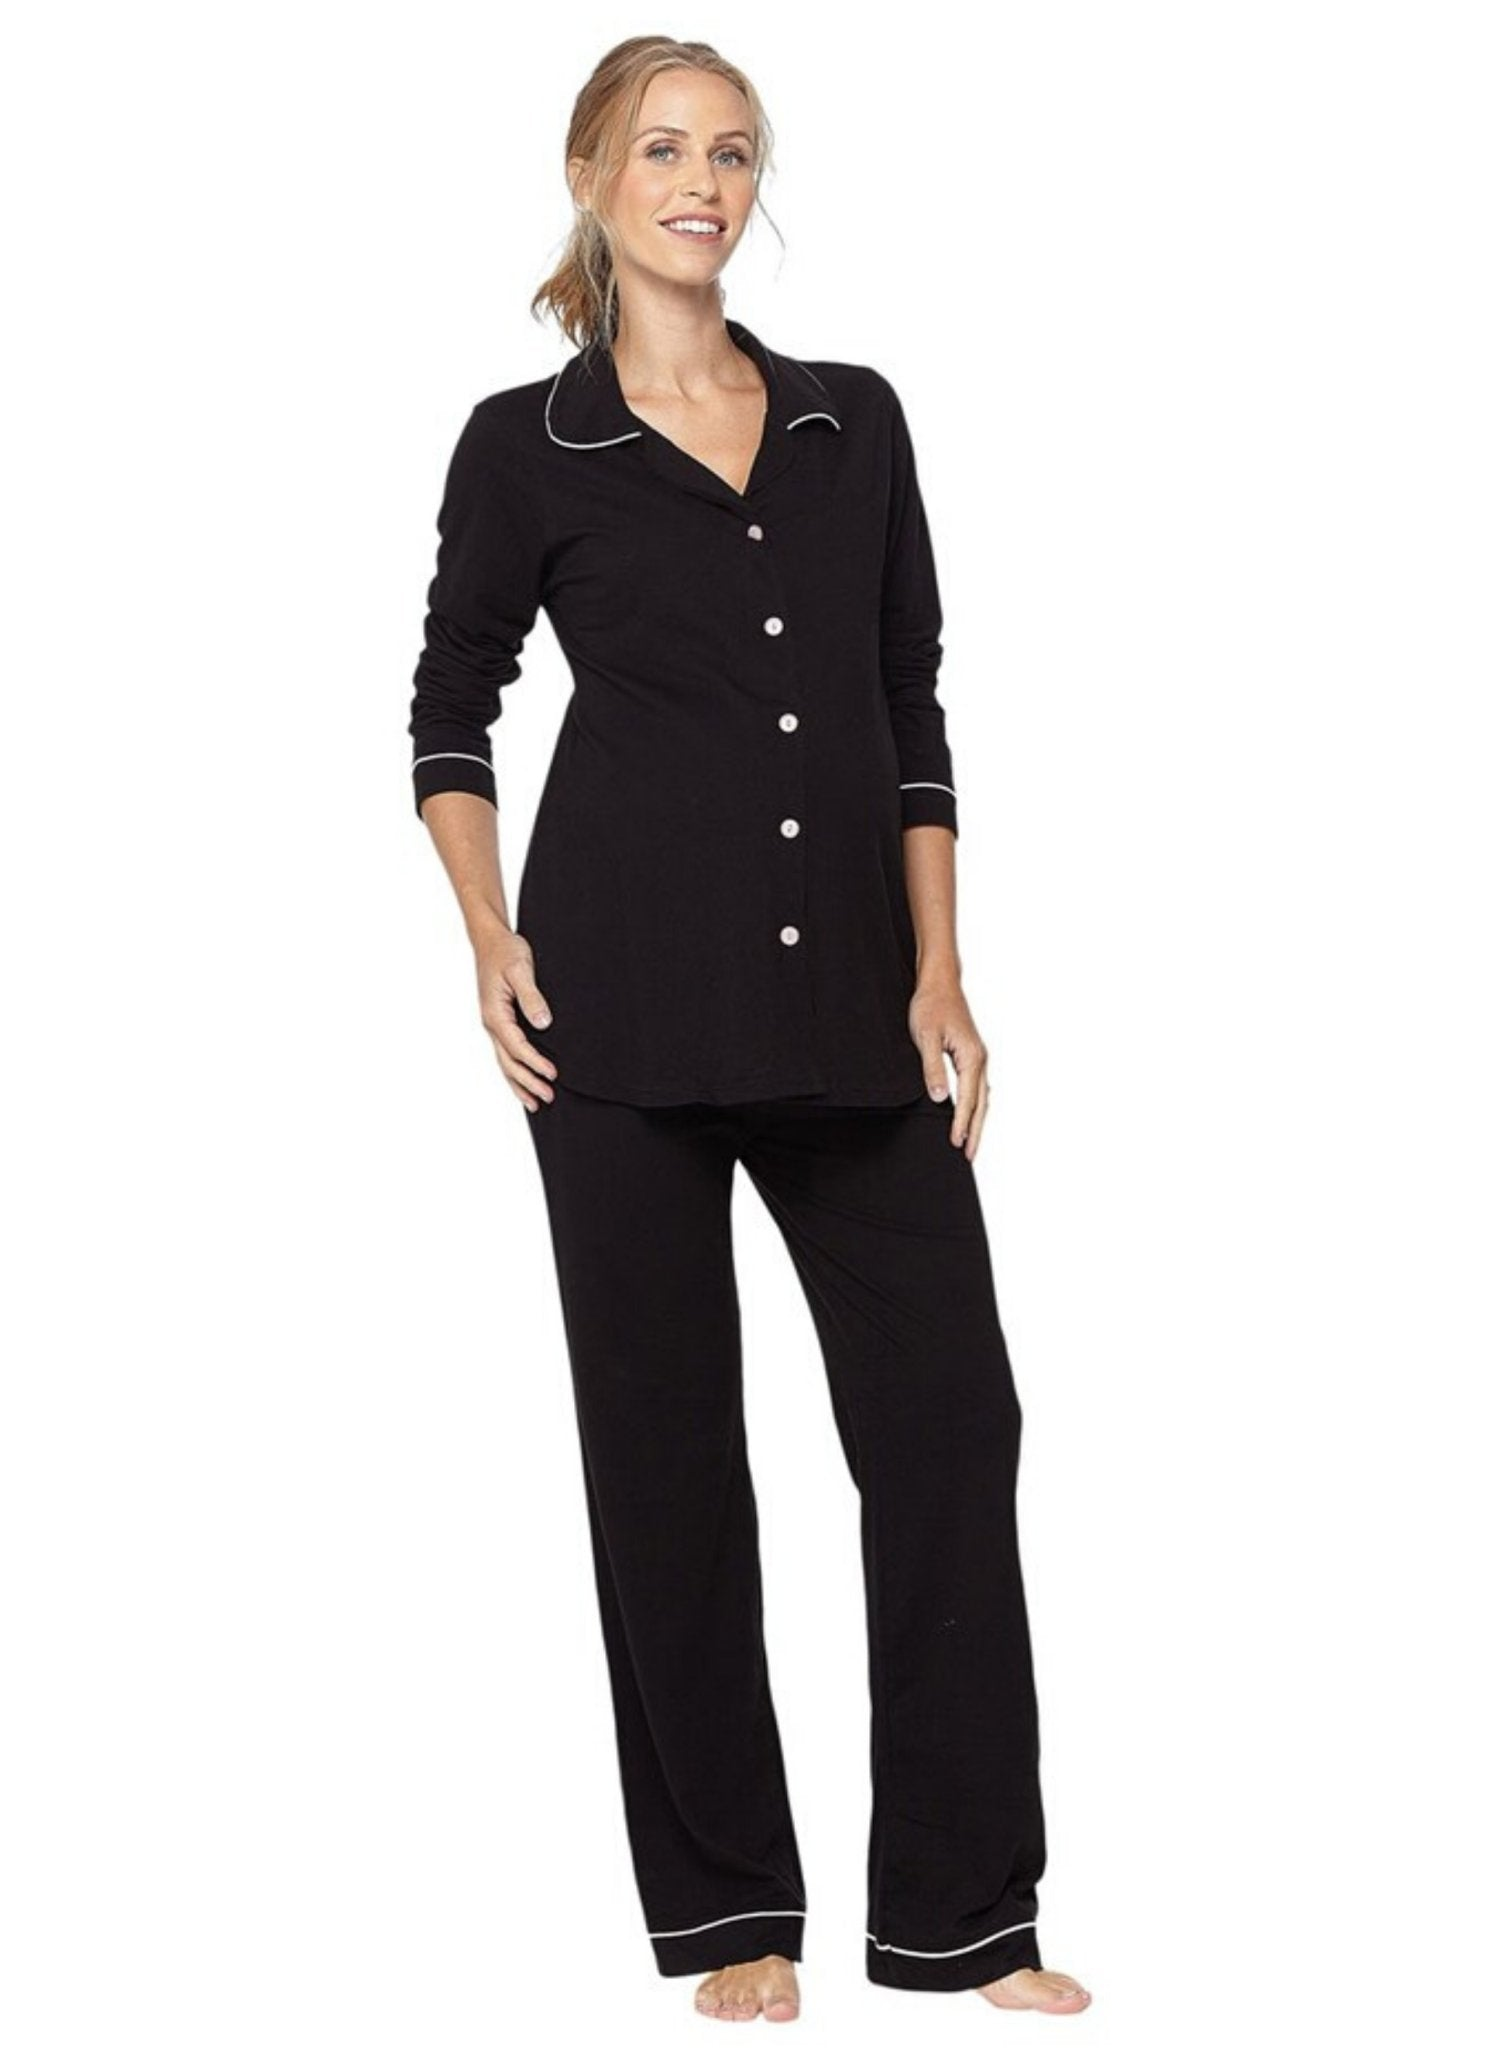 Lounge Chic Classic Maternity & Nursing PJ - Black - Mums and Bumps